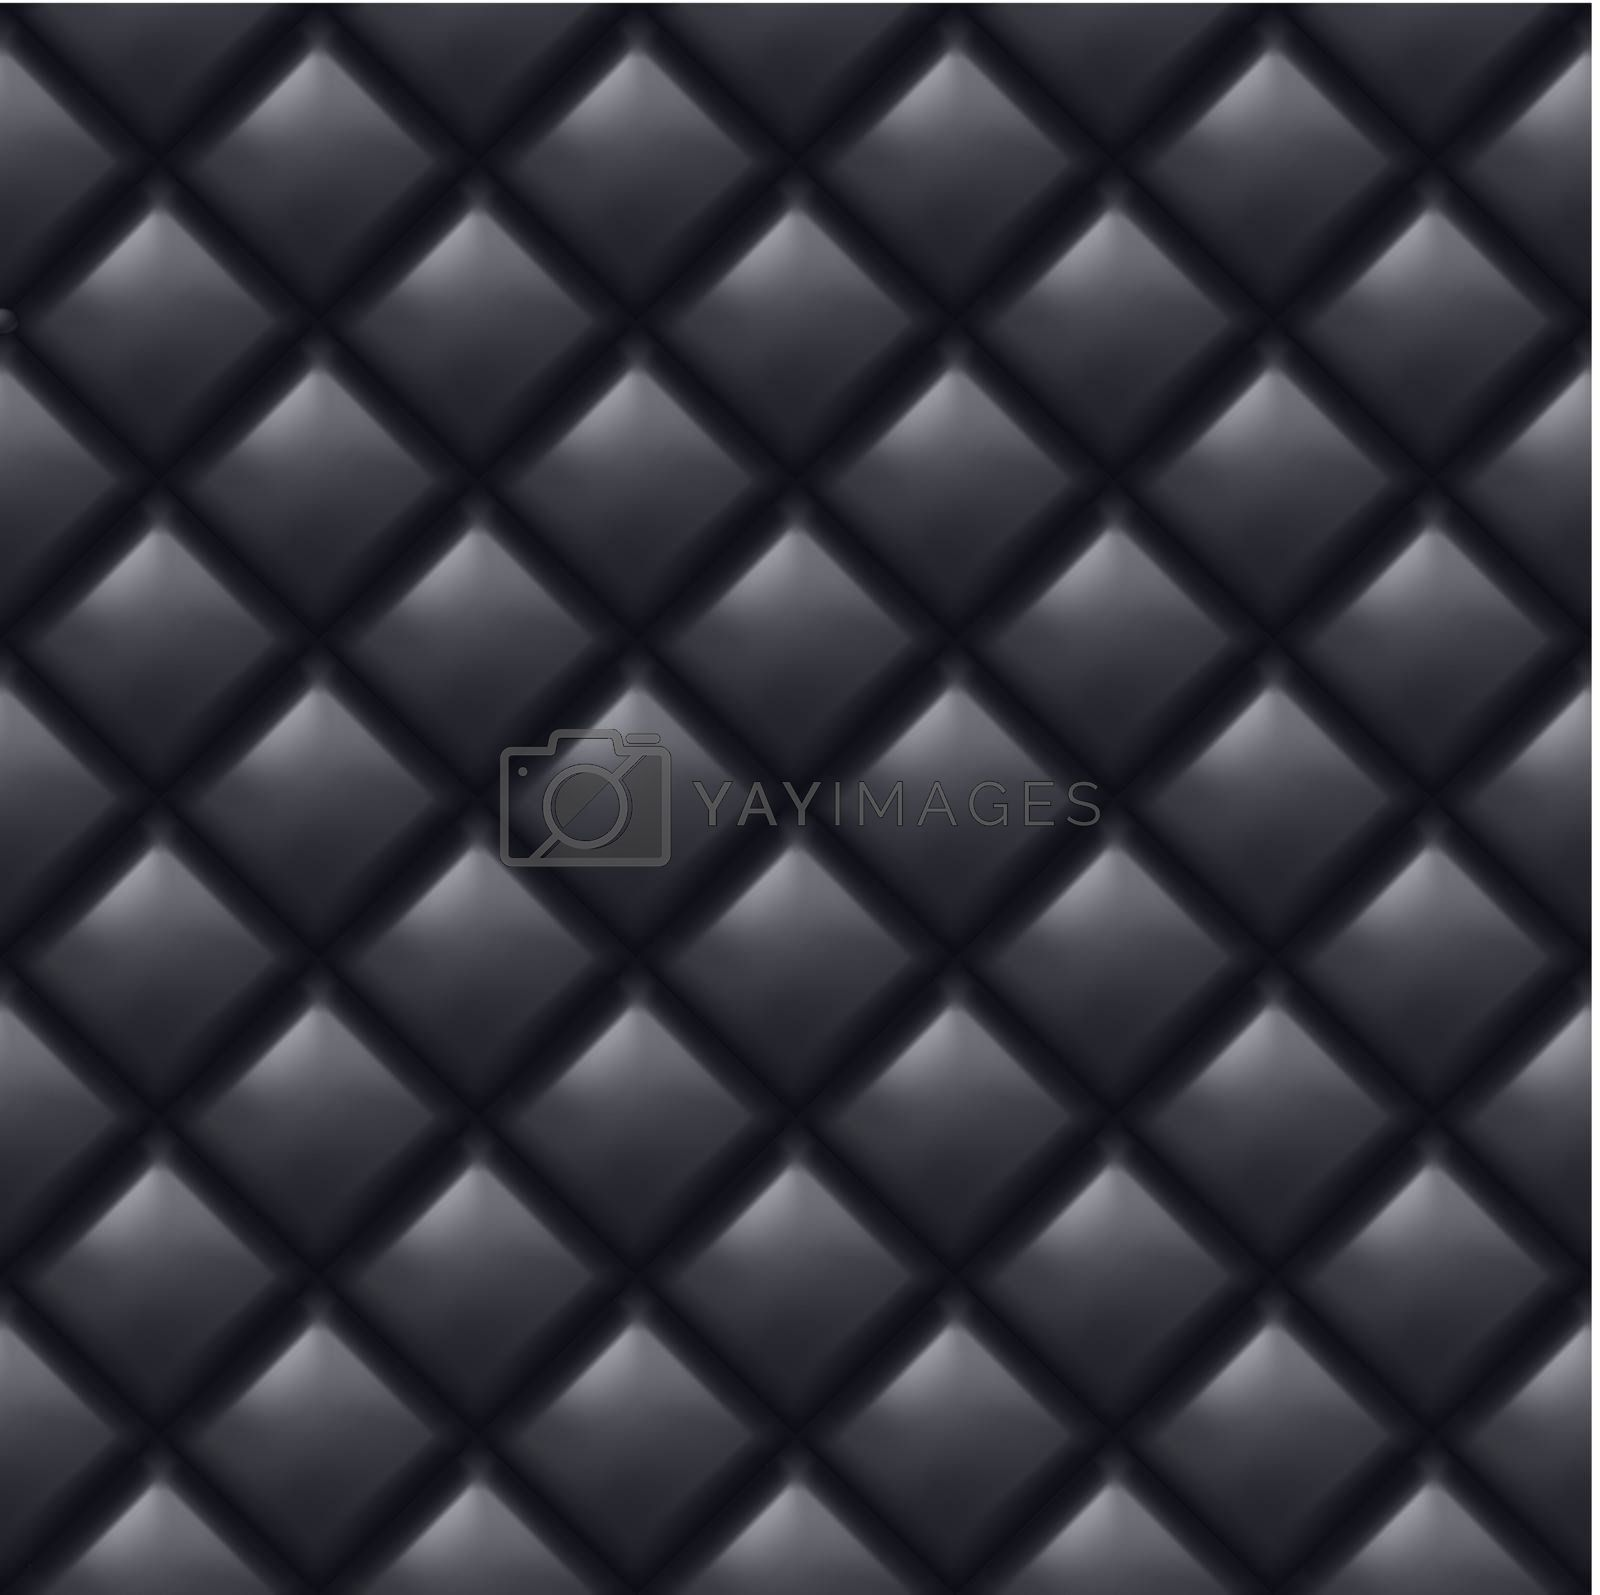 Seamless texture of abstract black wall. Illustration of designer